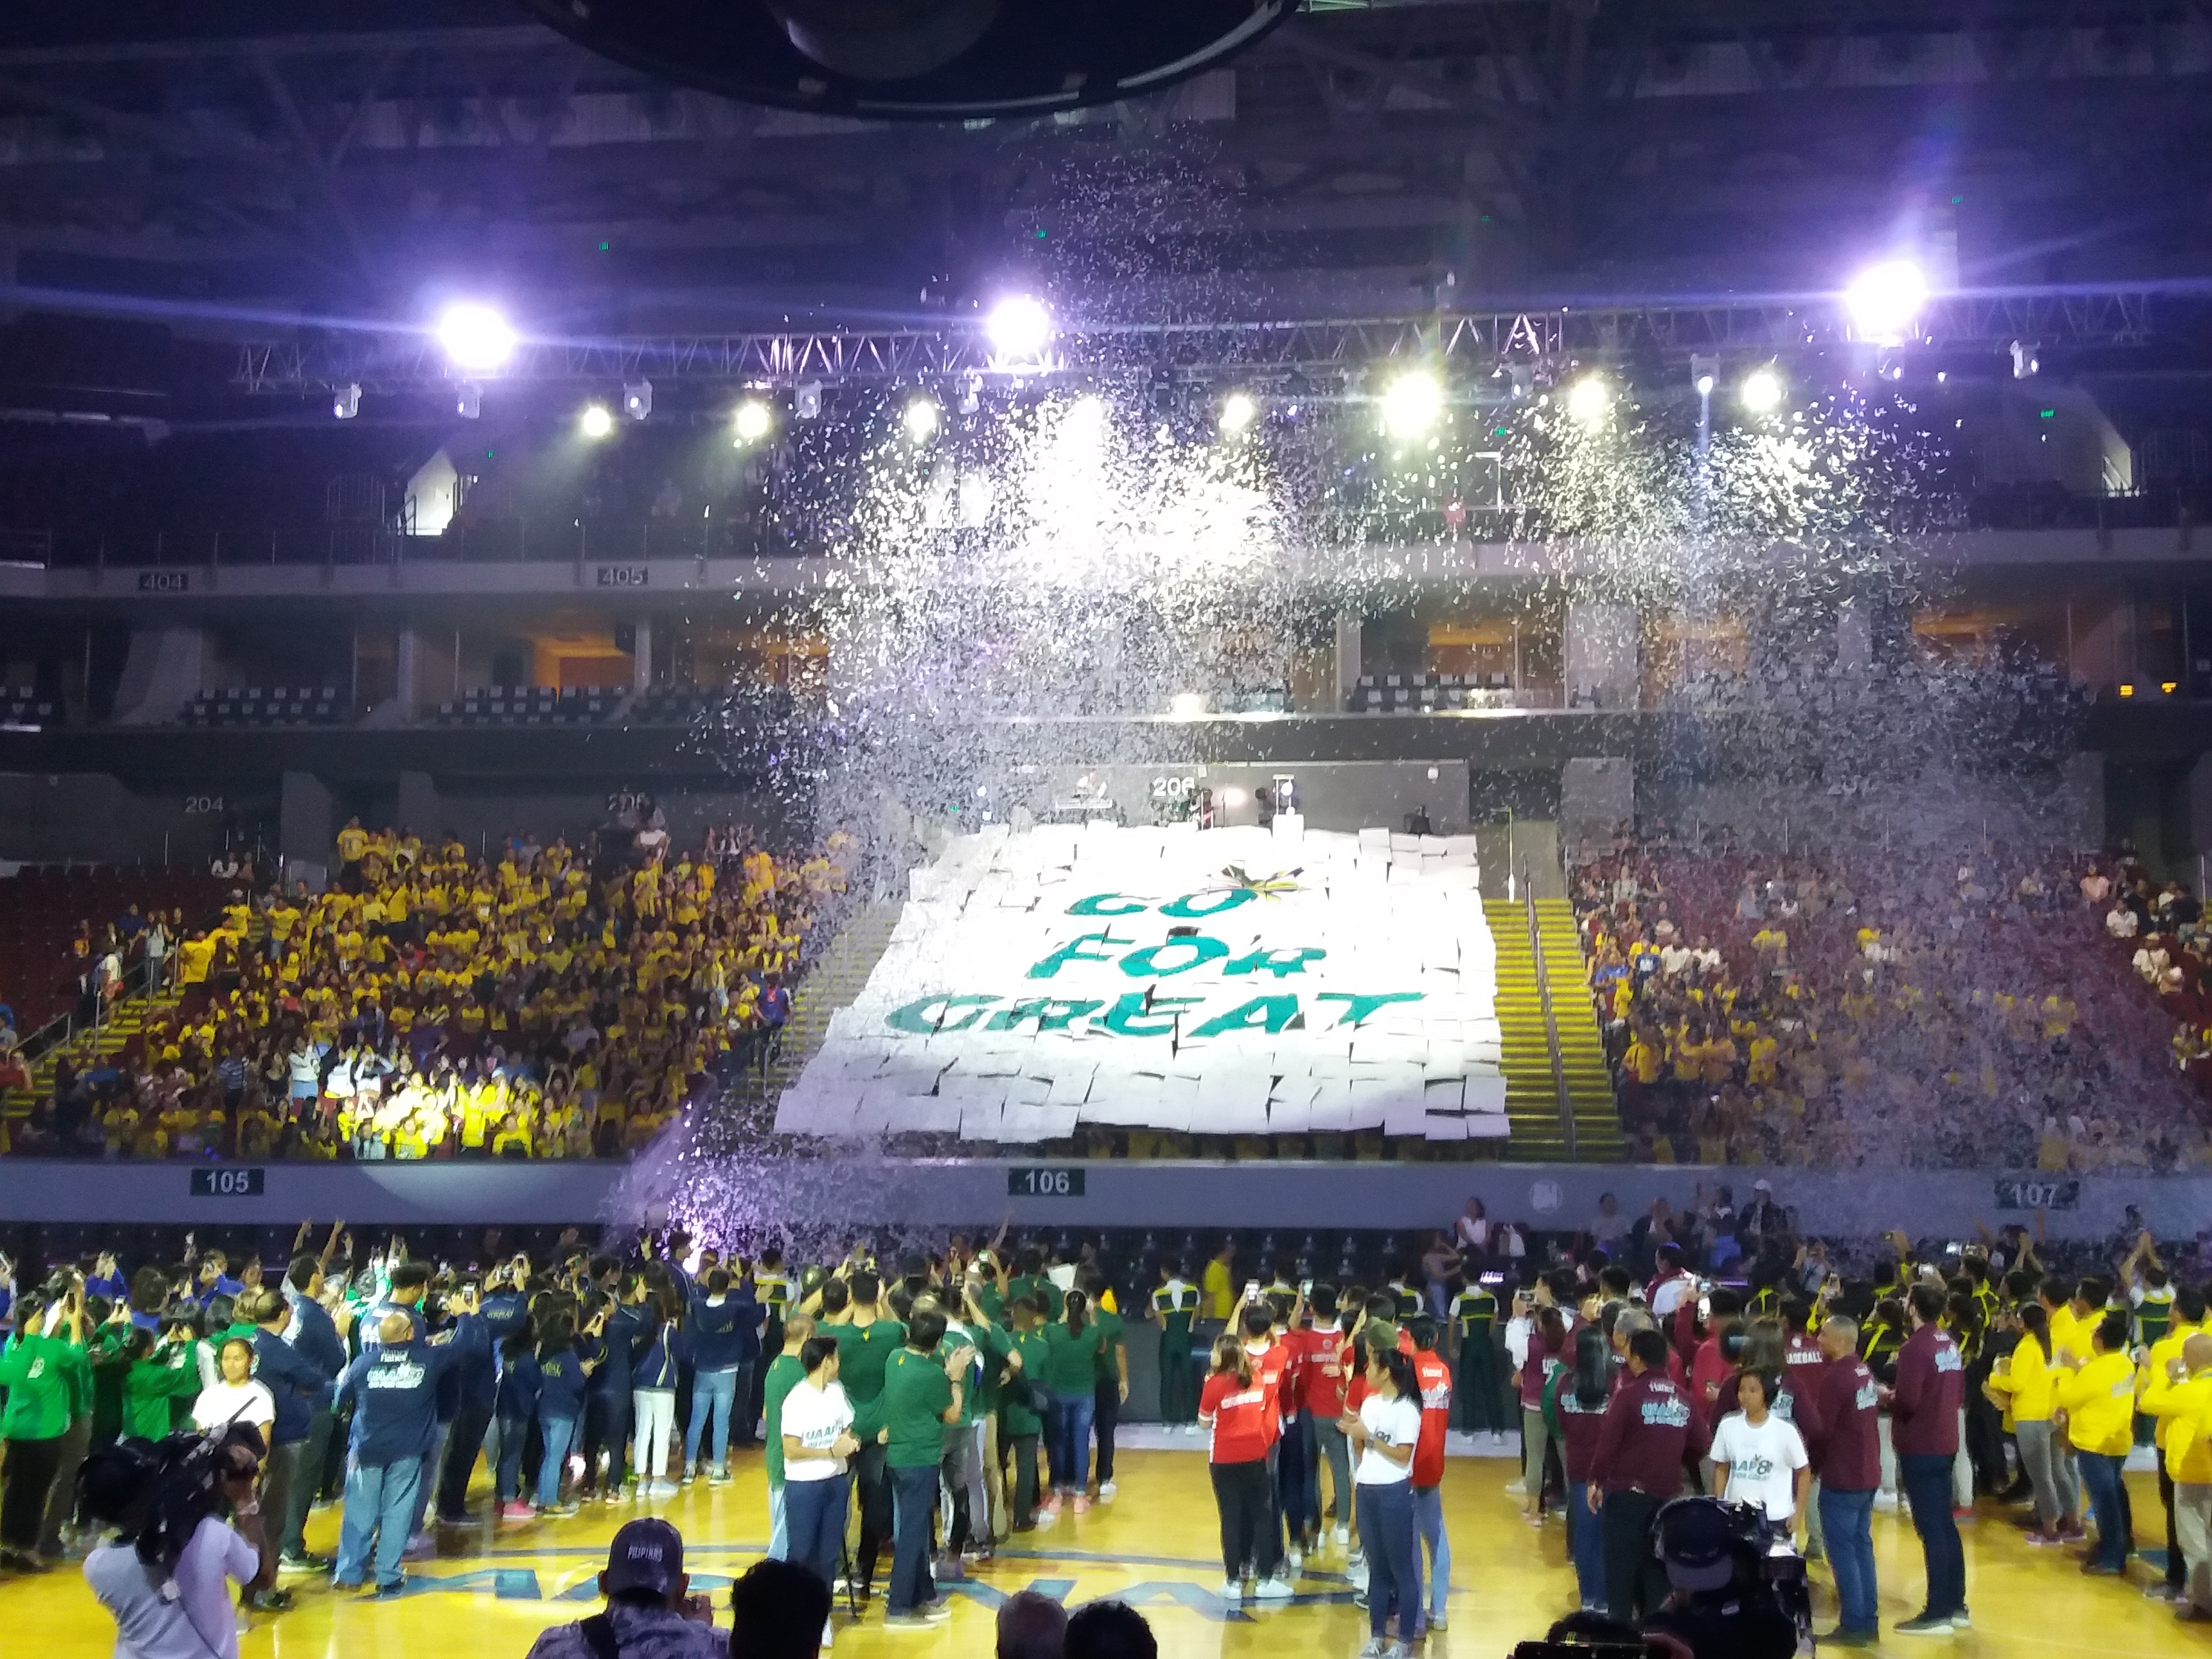 UAAP to leave ABS-CBN? New broadcast deal yet to be reached- report